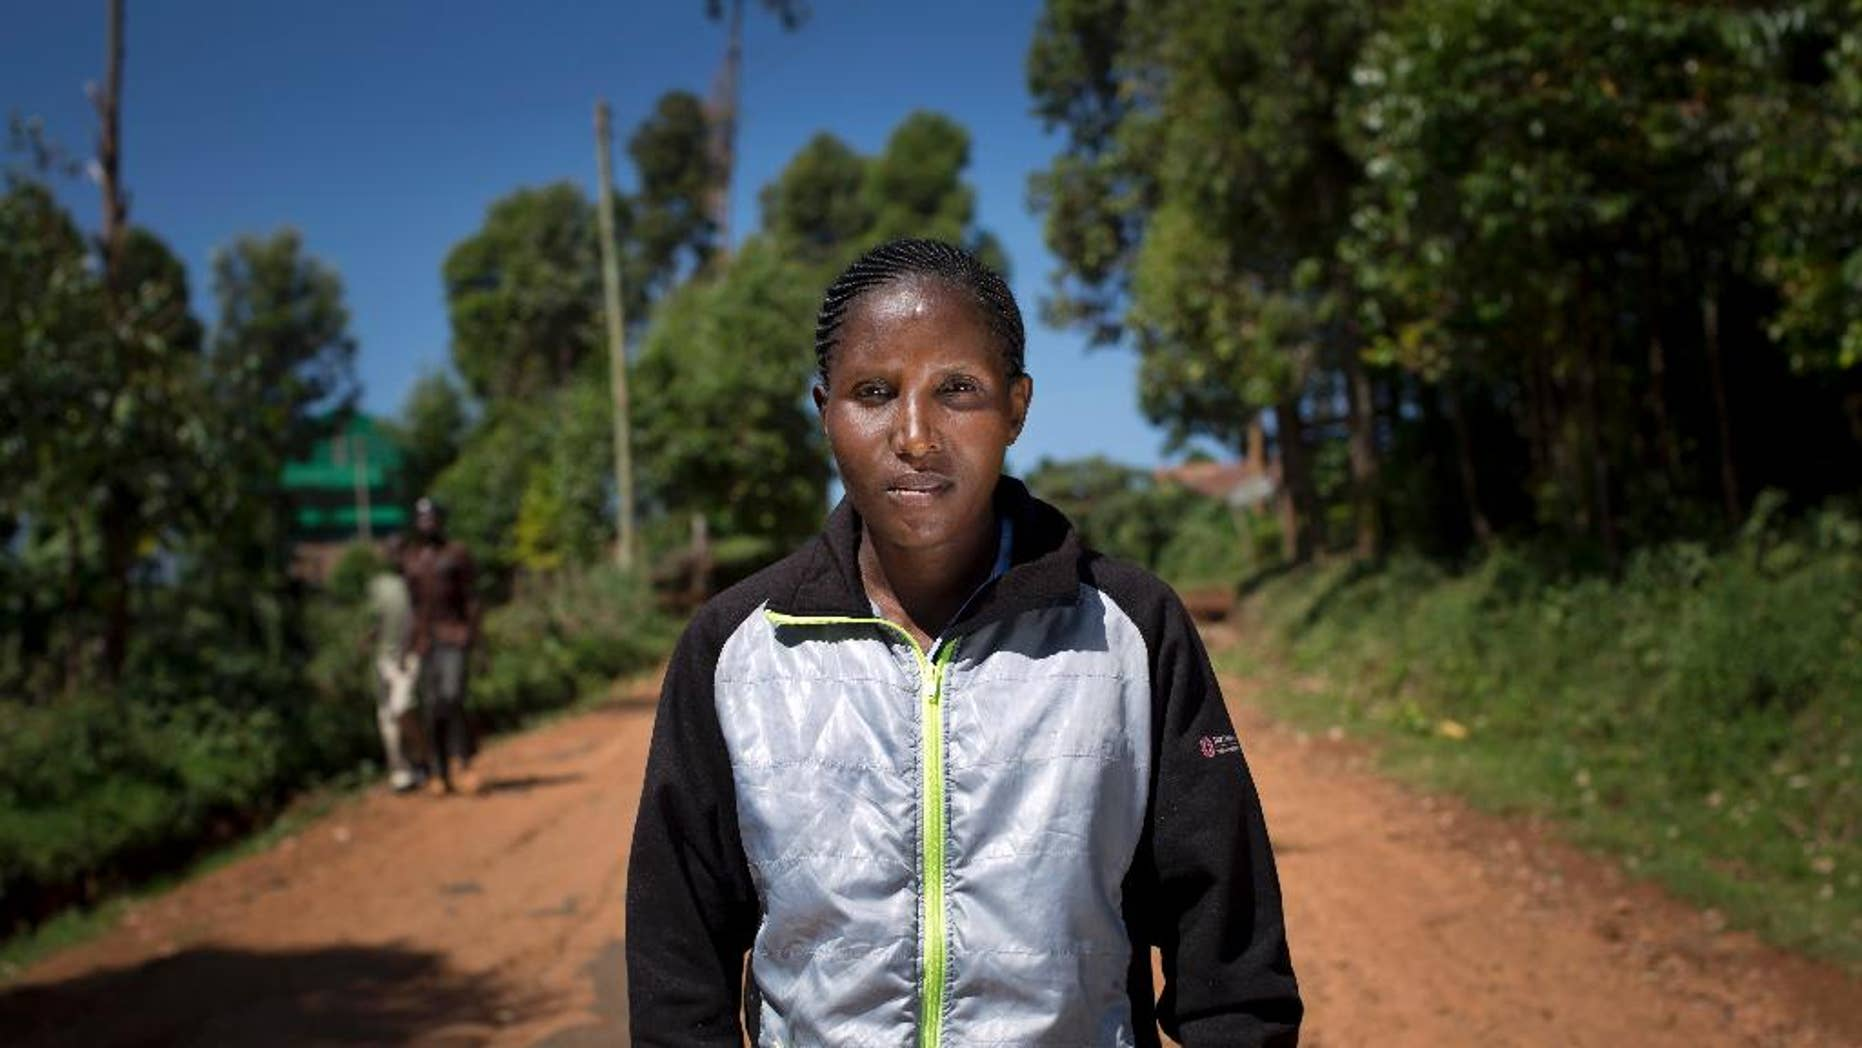 In this Monday, Feb. 1, 2016, photo, Kenyan runner Lilian Mariita poses for a portrait on the dirt road outside her house in the village of Nyaramba in western Kenya. The 27-year-old's racing career is over, and now she is back at square one: in Nyaramba, the muddy tea-plantation village in western Kenya she thought she'd escaped in 2011, when she left for the promise of a new life pounding American roads. (AP Photo/Ben Curtis)